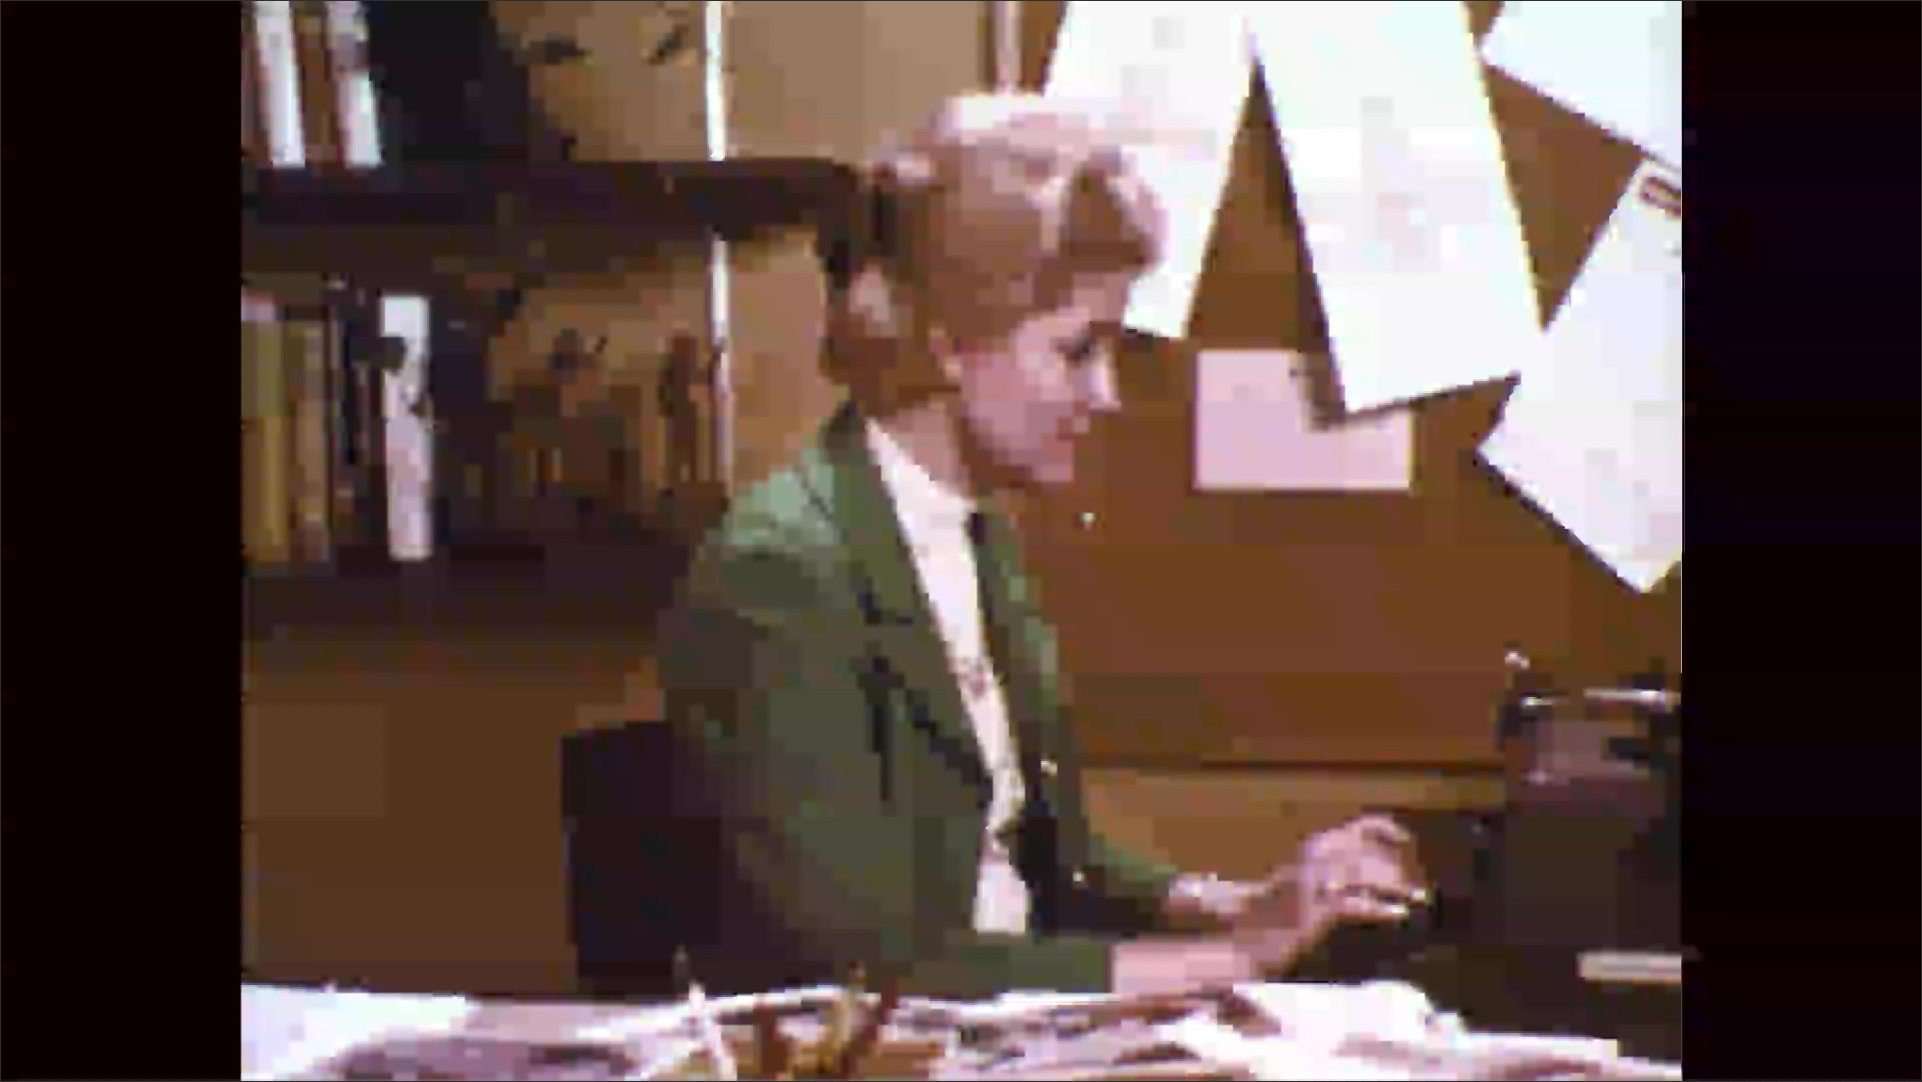 1960s: Woman sits at desk, looks at papers. Woman smiles, nods, types on typewriter.